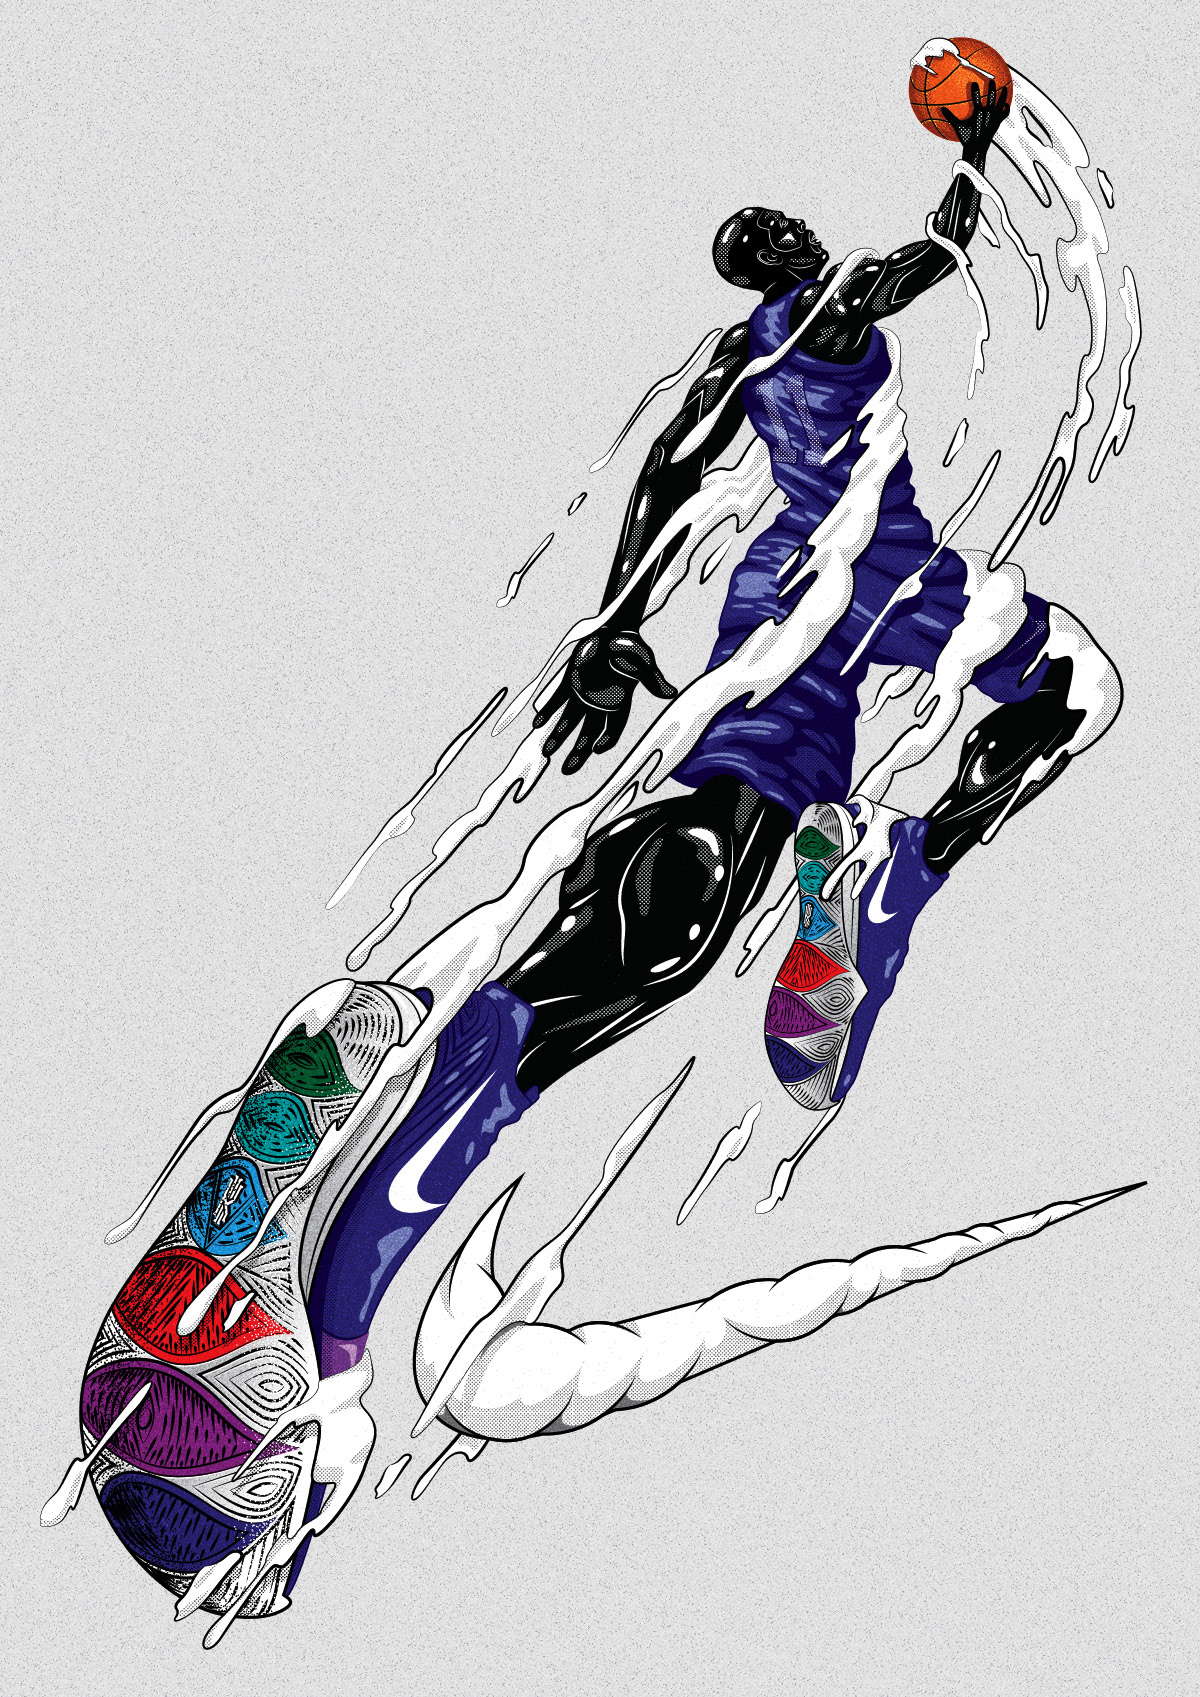 d0d62f49a Illustration series for Nike Kyrie 5 shoes's launched campaign in Shanghai.  The concept for these t-shirt artworks was inspired by unique and  fascinating ...